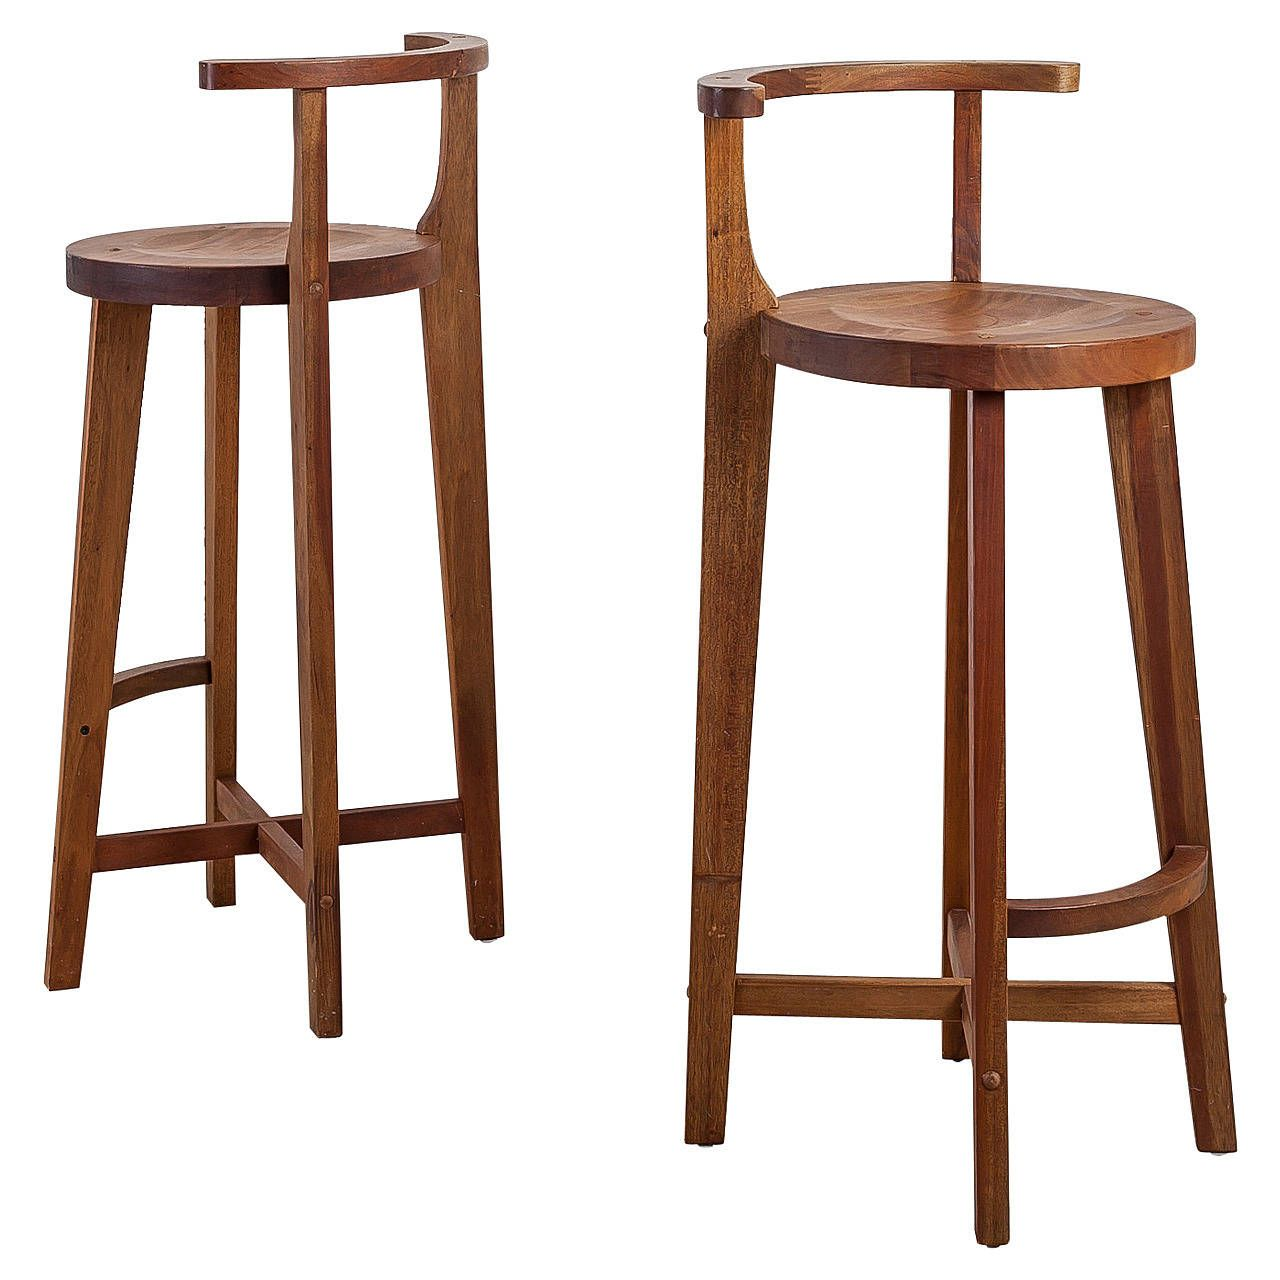 Phenomenal Pair Studio Crafted Wooden Bar Stools With Rounded Back Forskolin Free Trial Chair Design Images Forskolin Free Trialorg